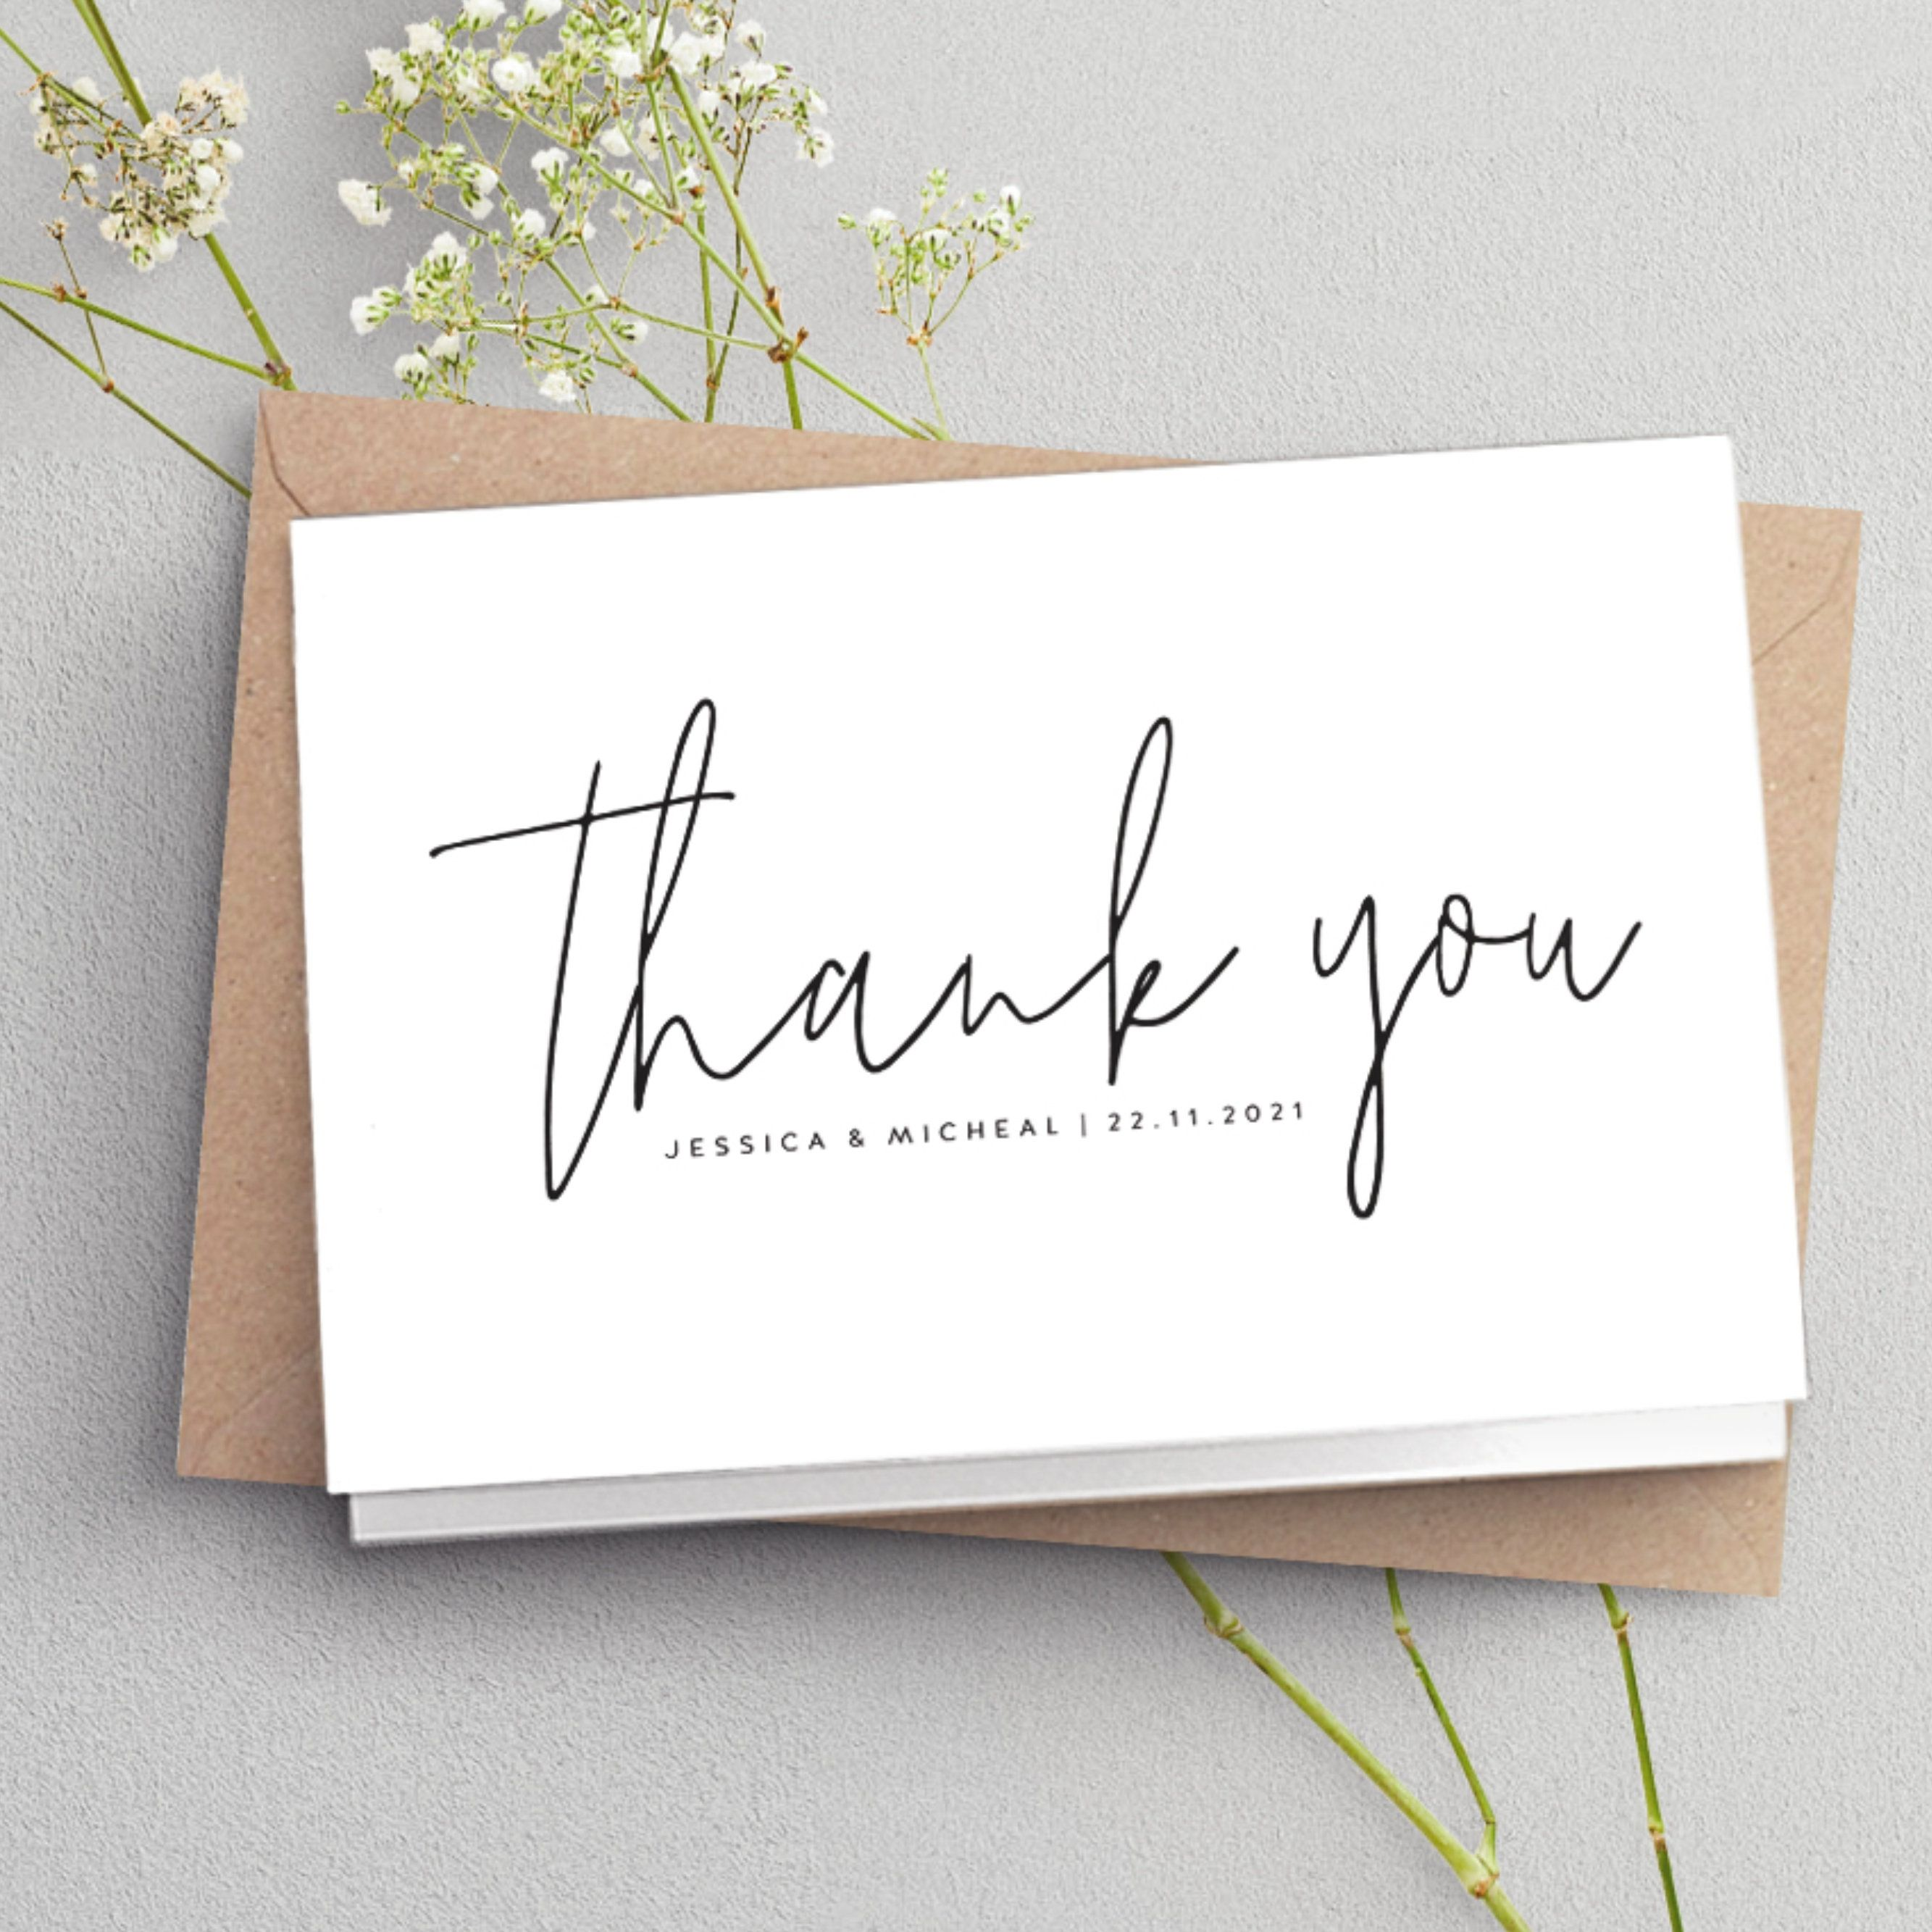 Folded Thank You Cards Wedding Thank You Card Simple Folded